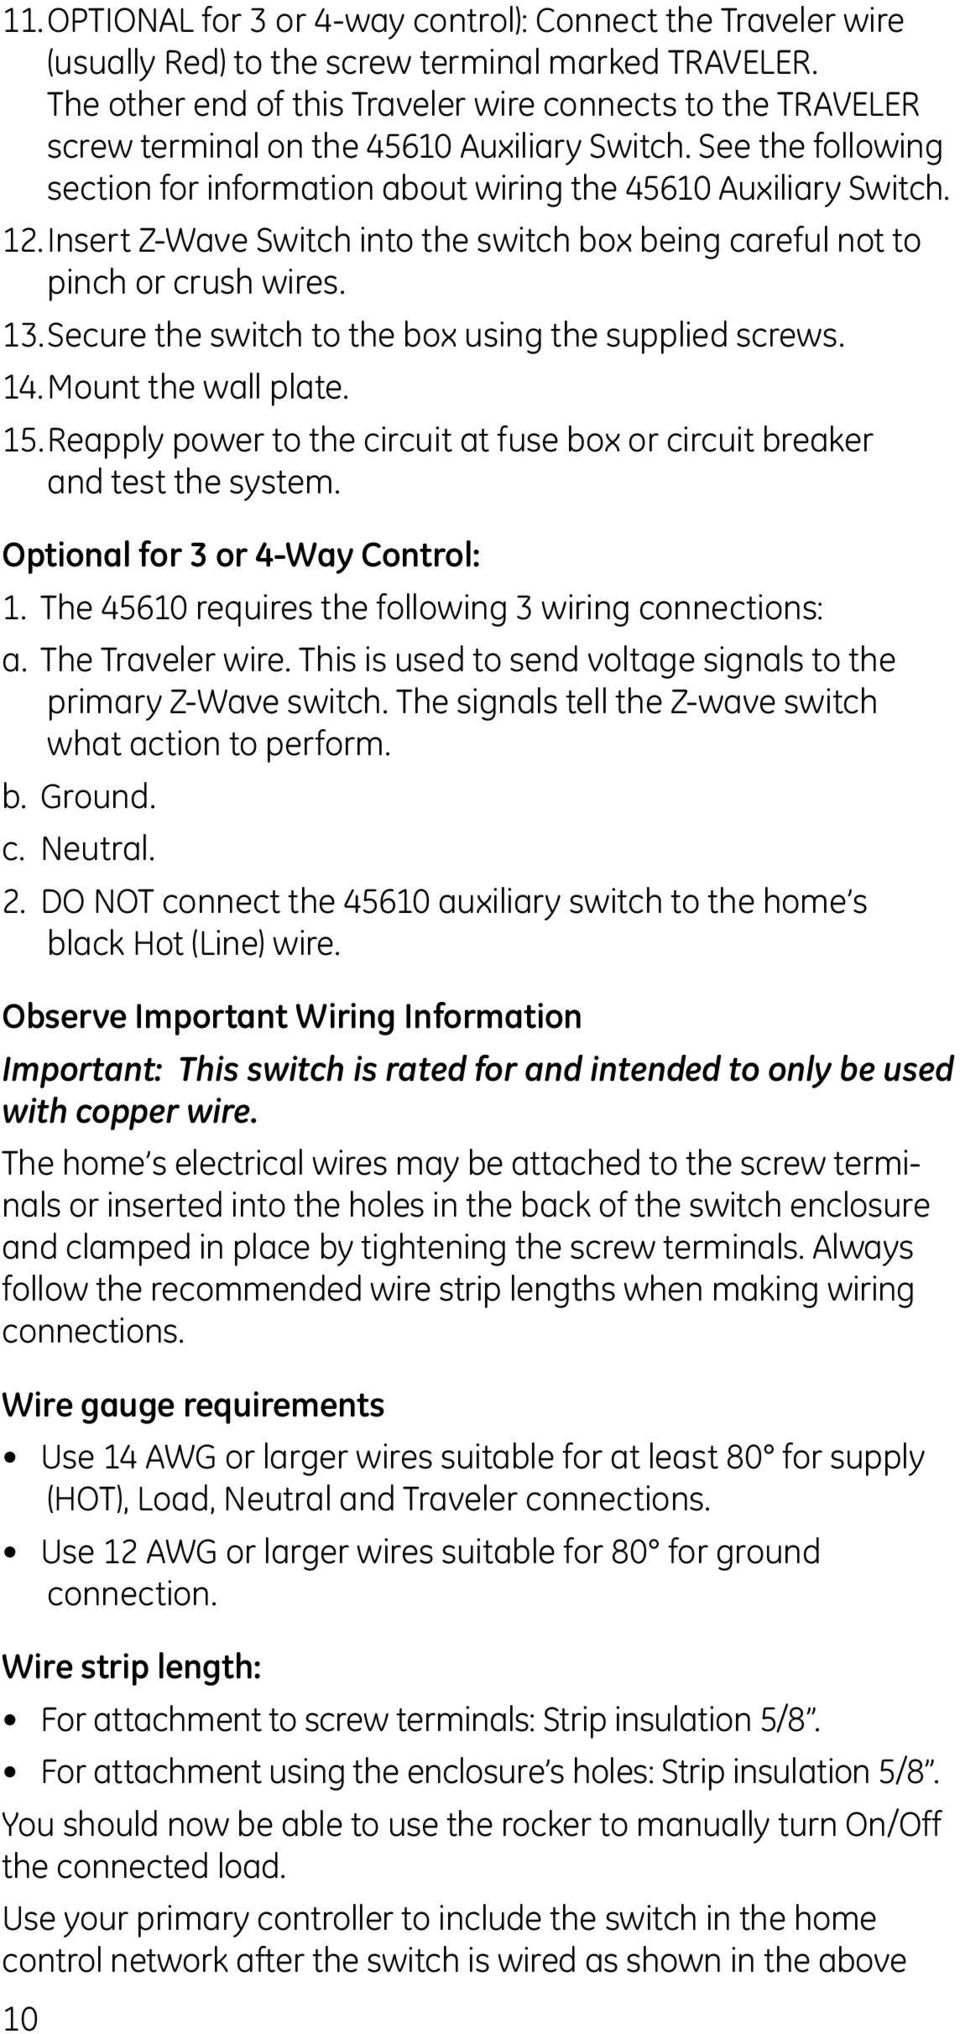 Insert Z-Wave Switch into the switch box being careful not to pinch or crush wires. 13. Secure the switch to the box using the supplied screws. 14. Mount the wall plate. 15.